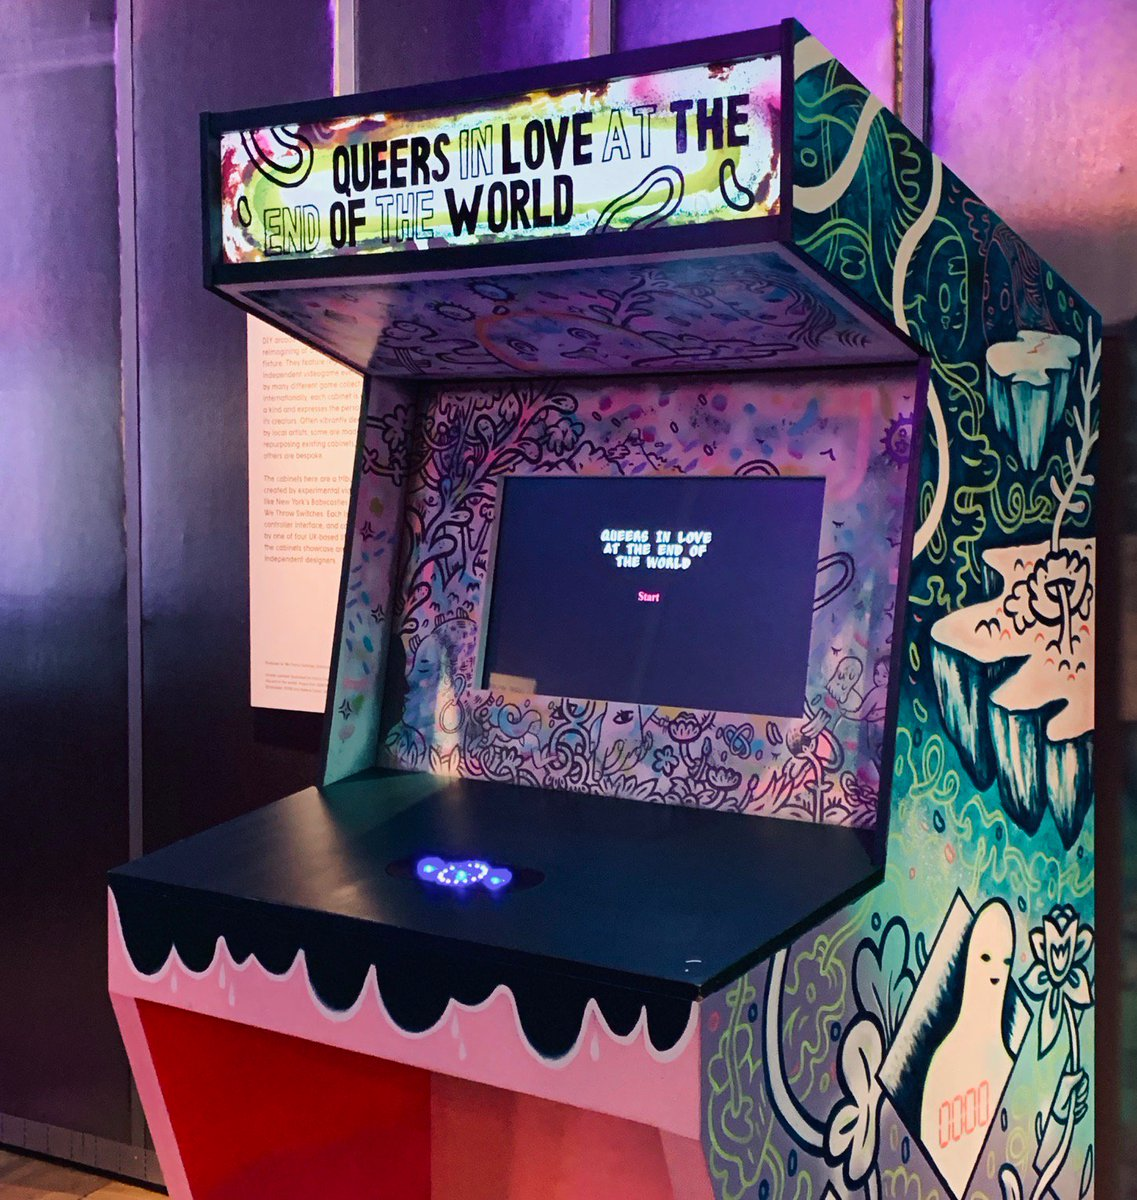 What would you do if the world ended? Our Videogames exhibition features this hypertext games that explores what would you do with your last 10 seconds on earth with the person you love. Play online here: https://t.co/kGJWbTtfqM   Videogames: #DesignPlayDisrupt closes 24 Feb.